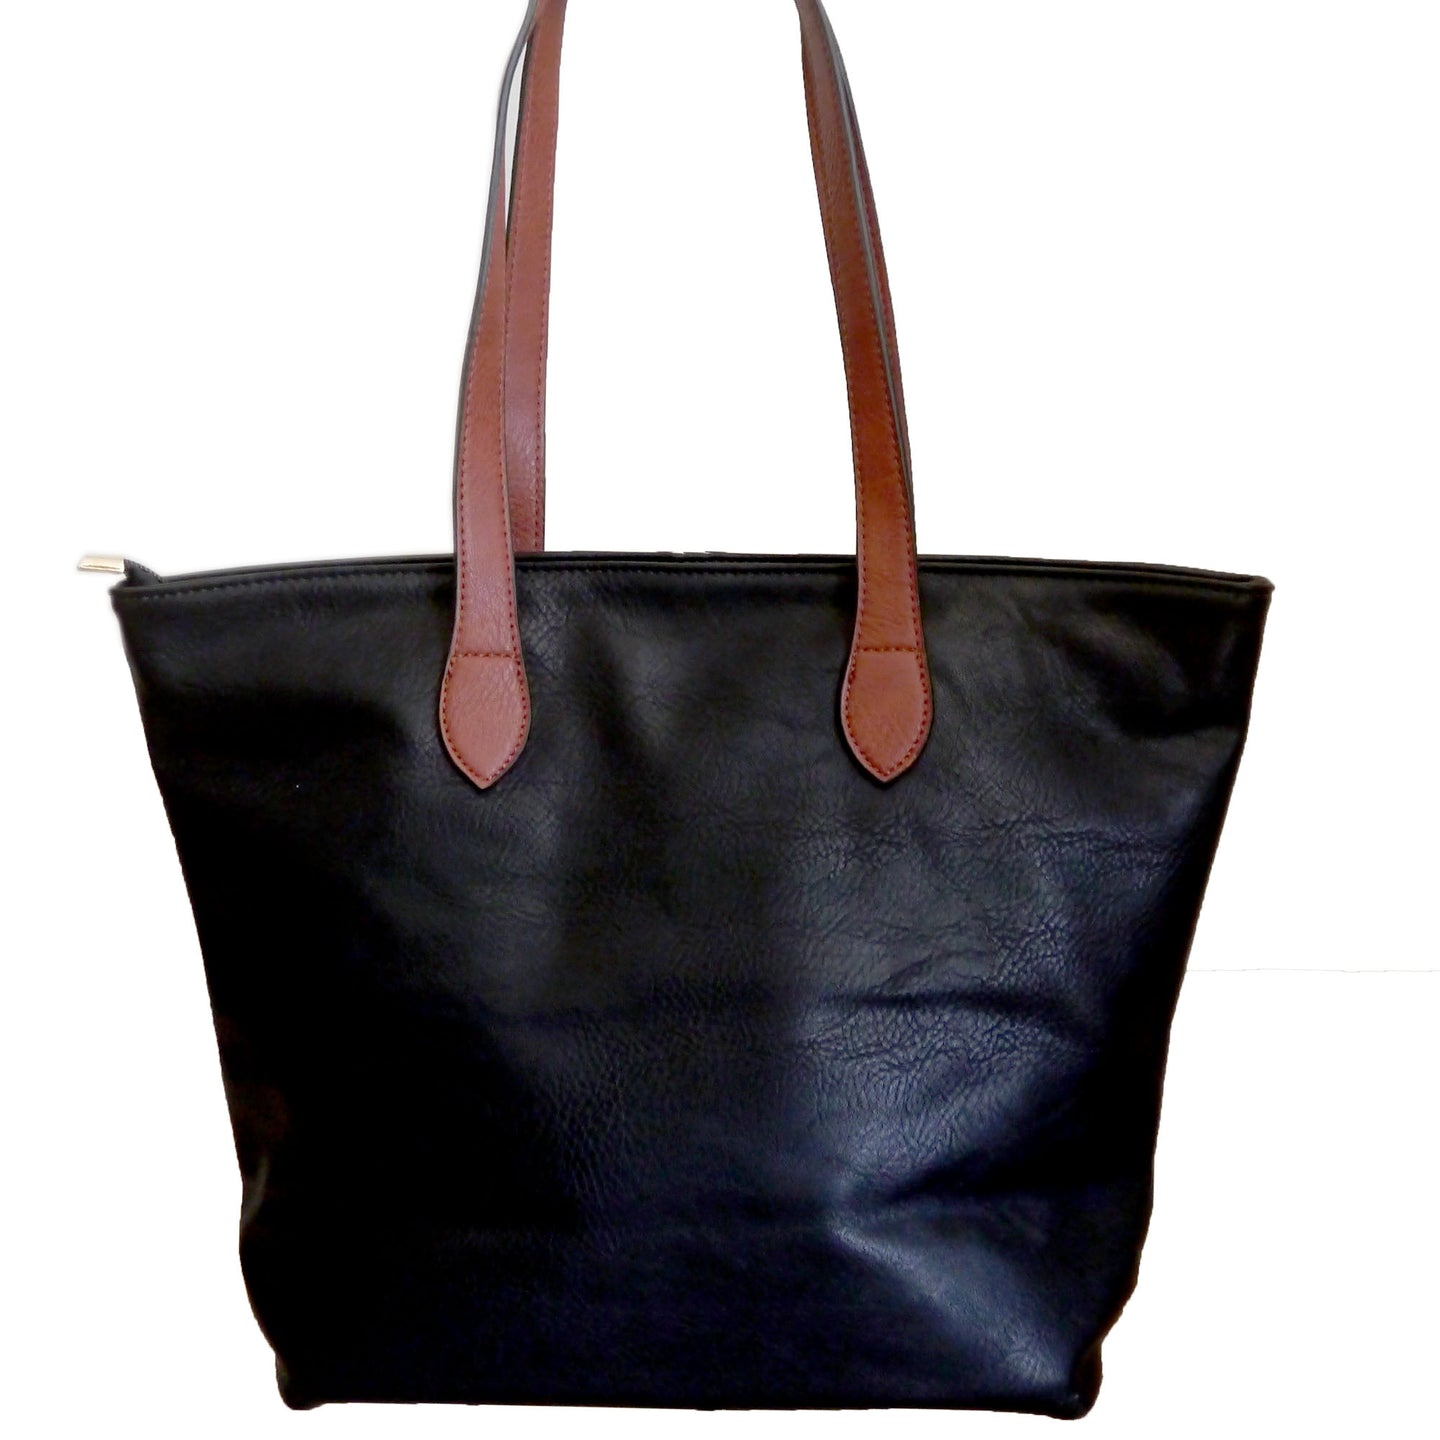 Small Shopper Bag- Tote handbag